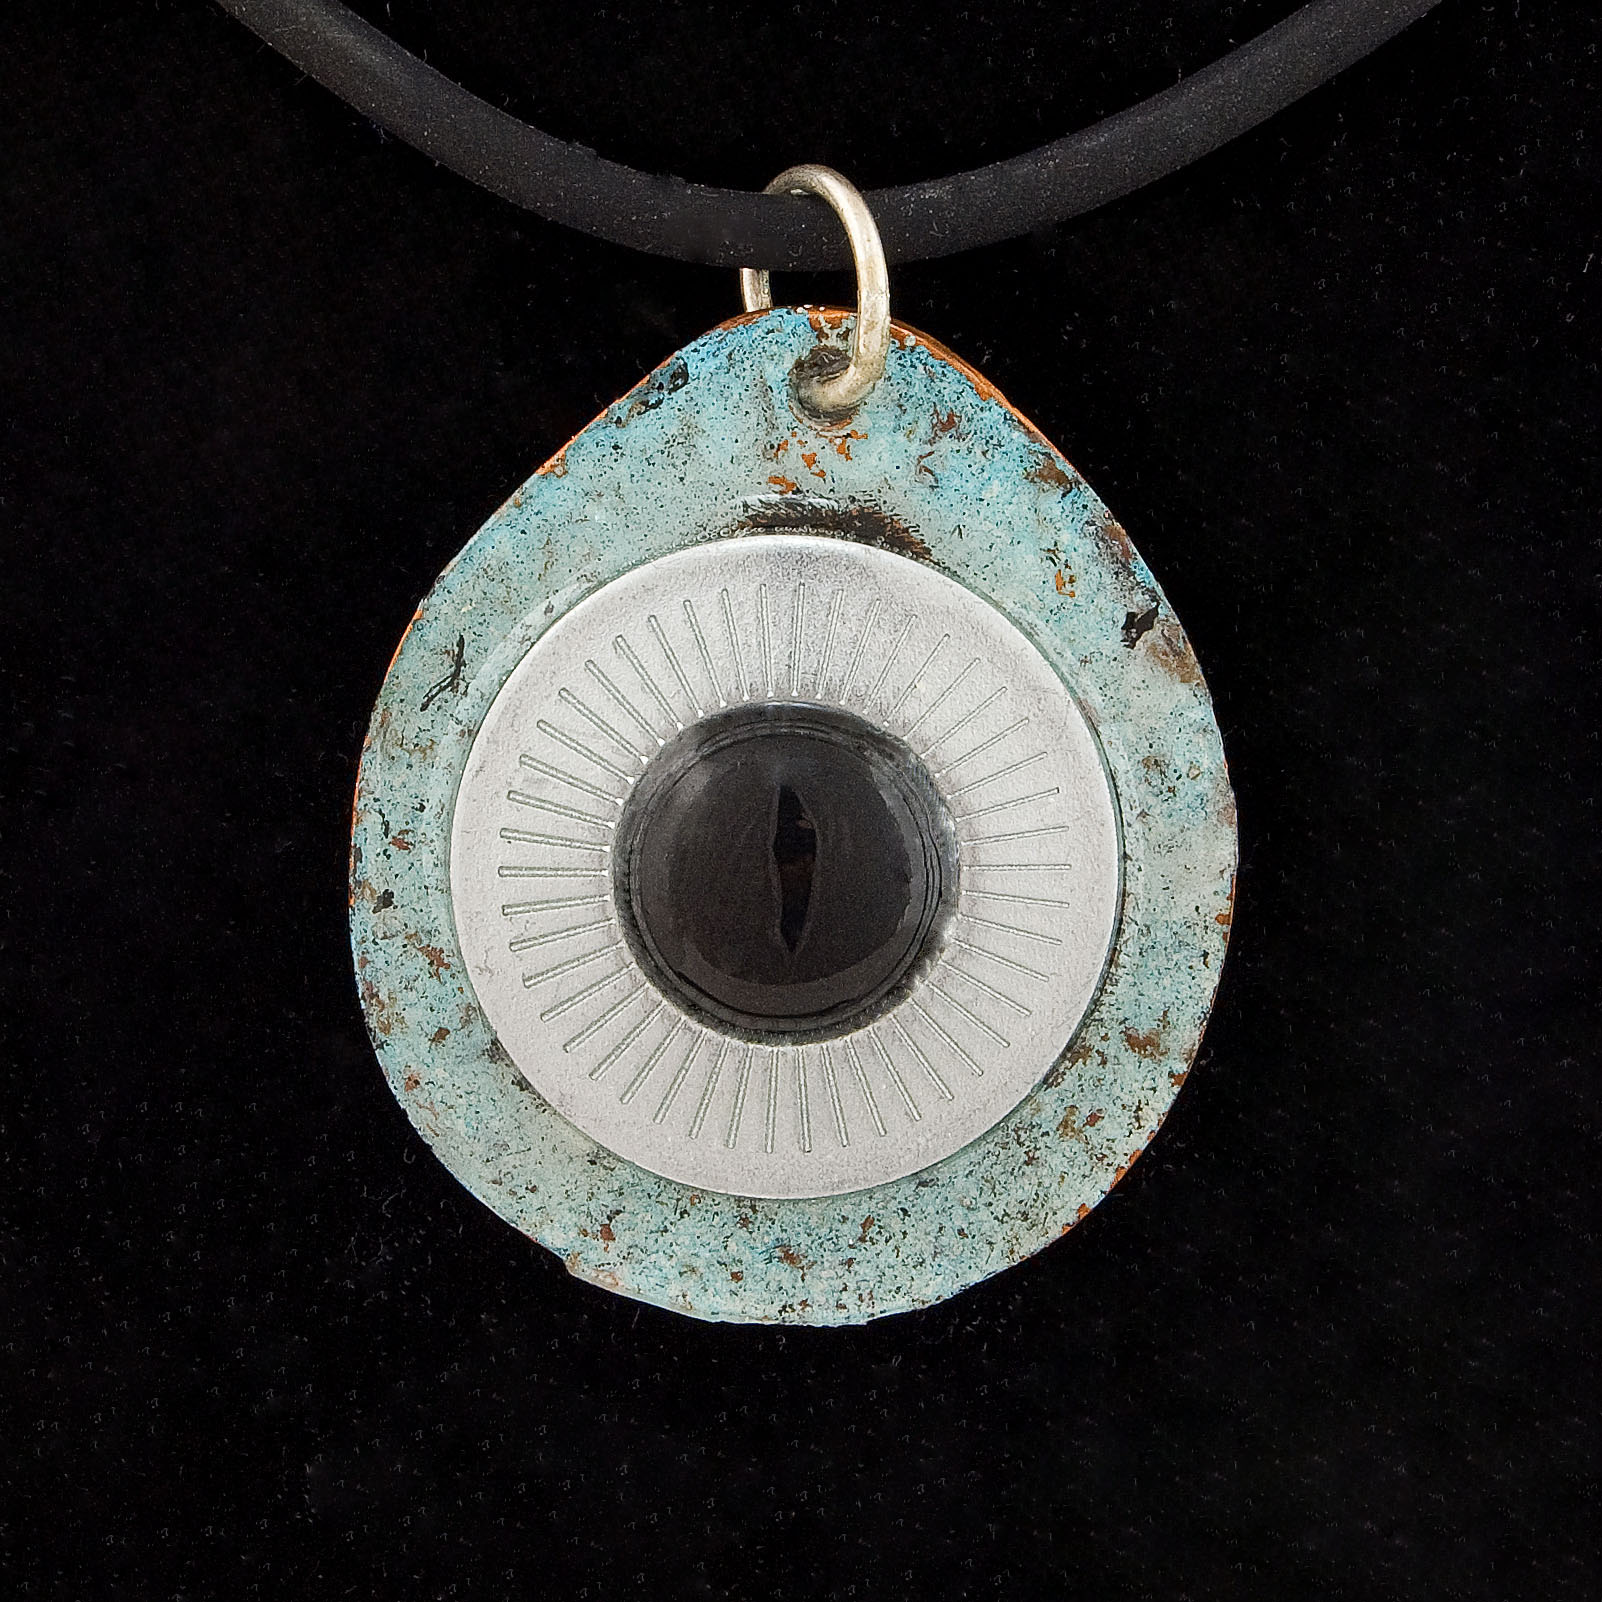 Copper pendant base with turquoise enamel, a large metal washer, with a left-over screw cap from the black and white pendant fitted snugly into the centre.